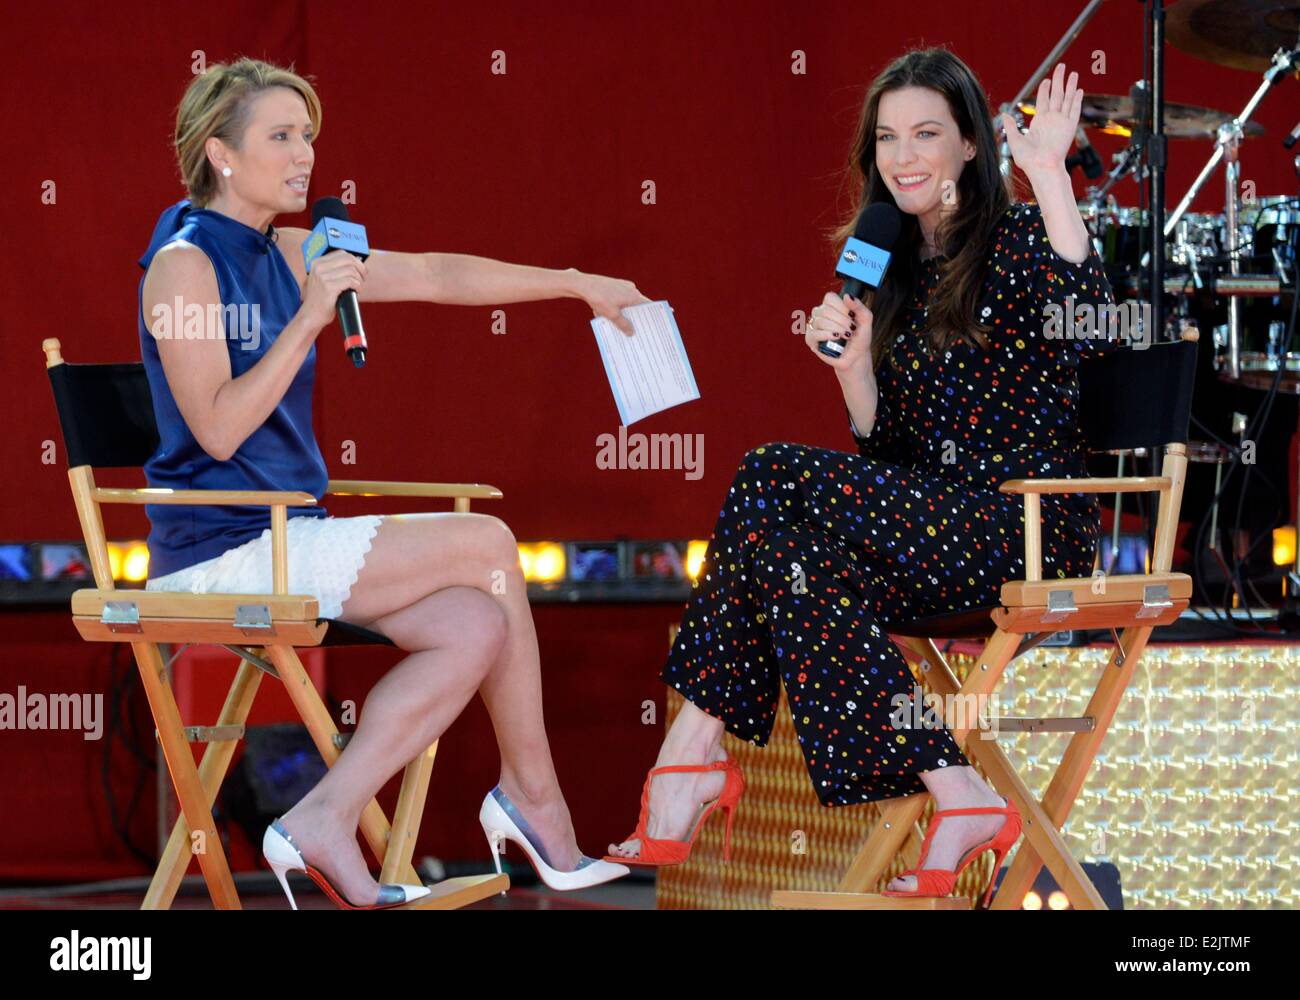 New York, NY, USA. 20th June, 2014. Amy Robach, Liv Tyler on stage for Good Morning America's (GMA) Fun in the Sun Stock Photo